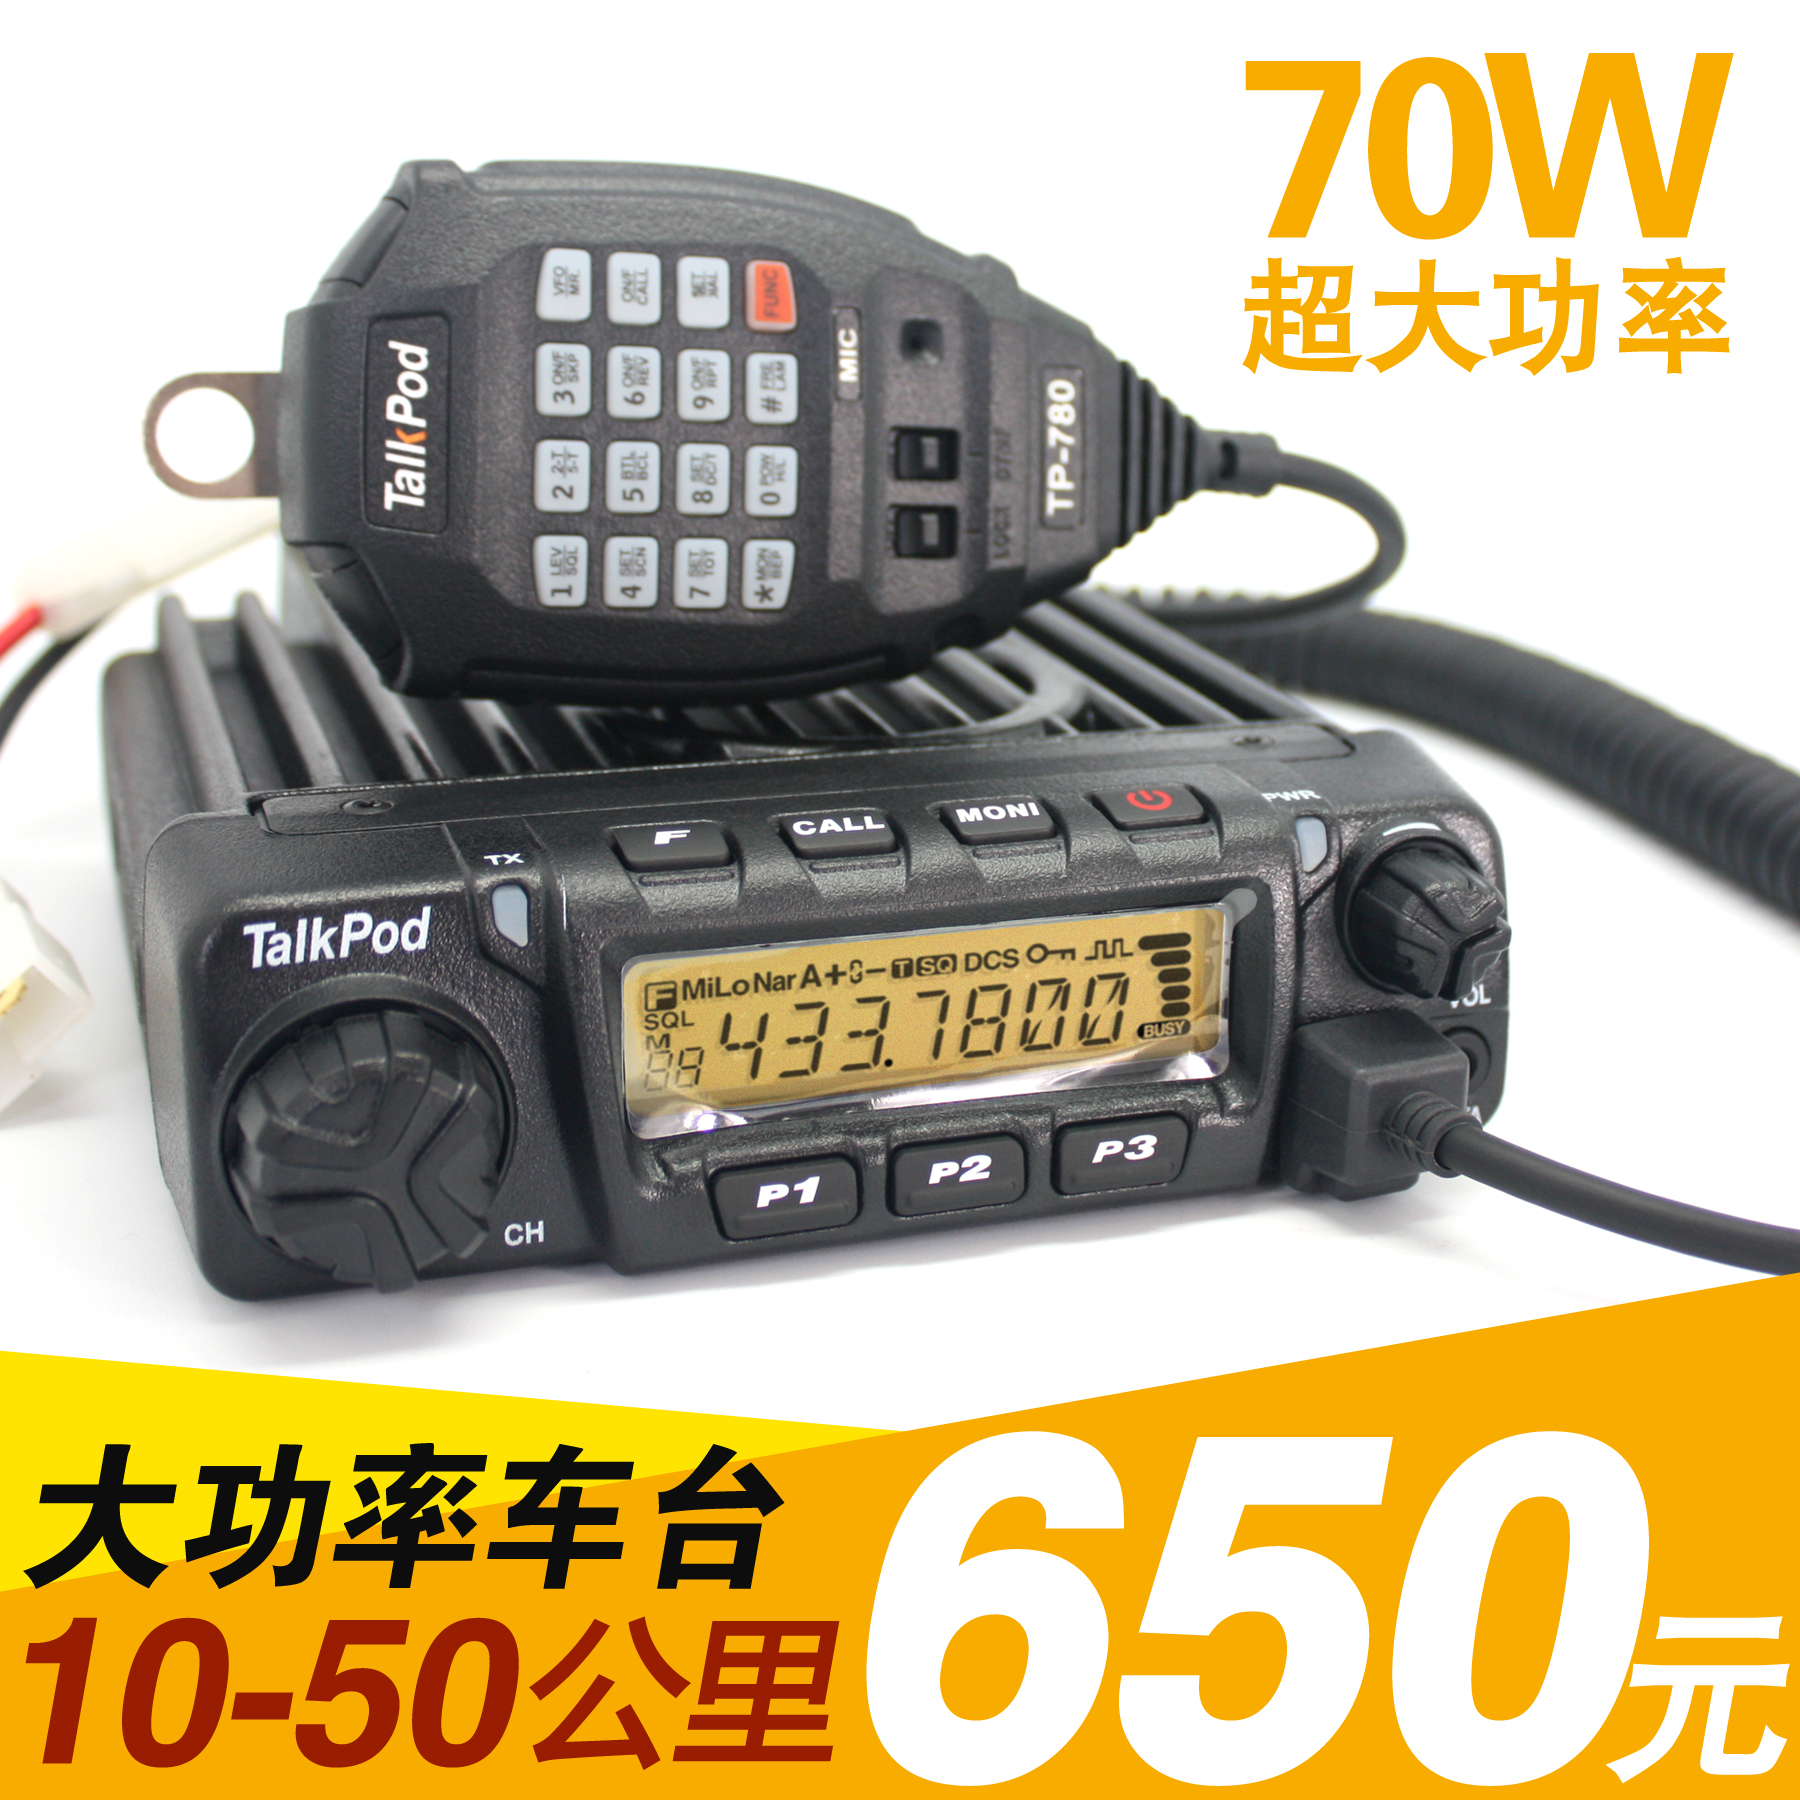 China Car Radio Shopping Guide At Alibabacom Kenwood Stereo Audio Get Quotations Free Shipping Extension Peng 70w Non Station 50 Civilian